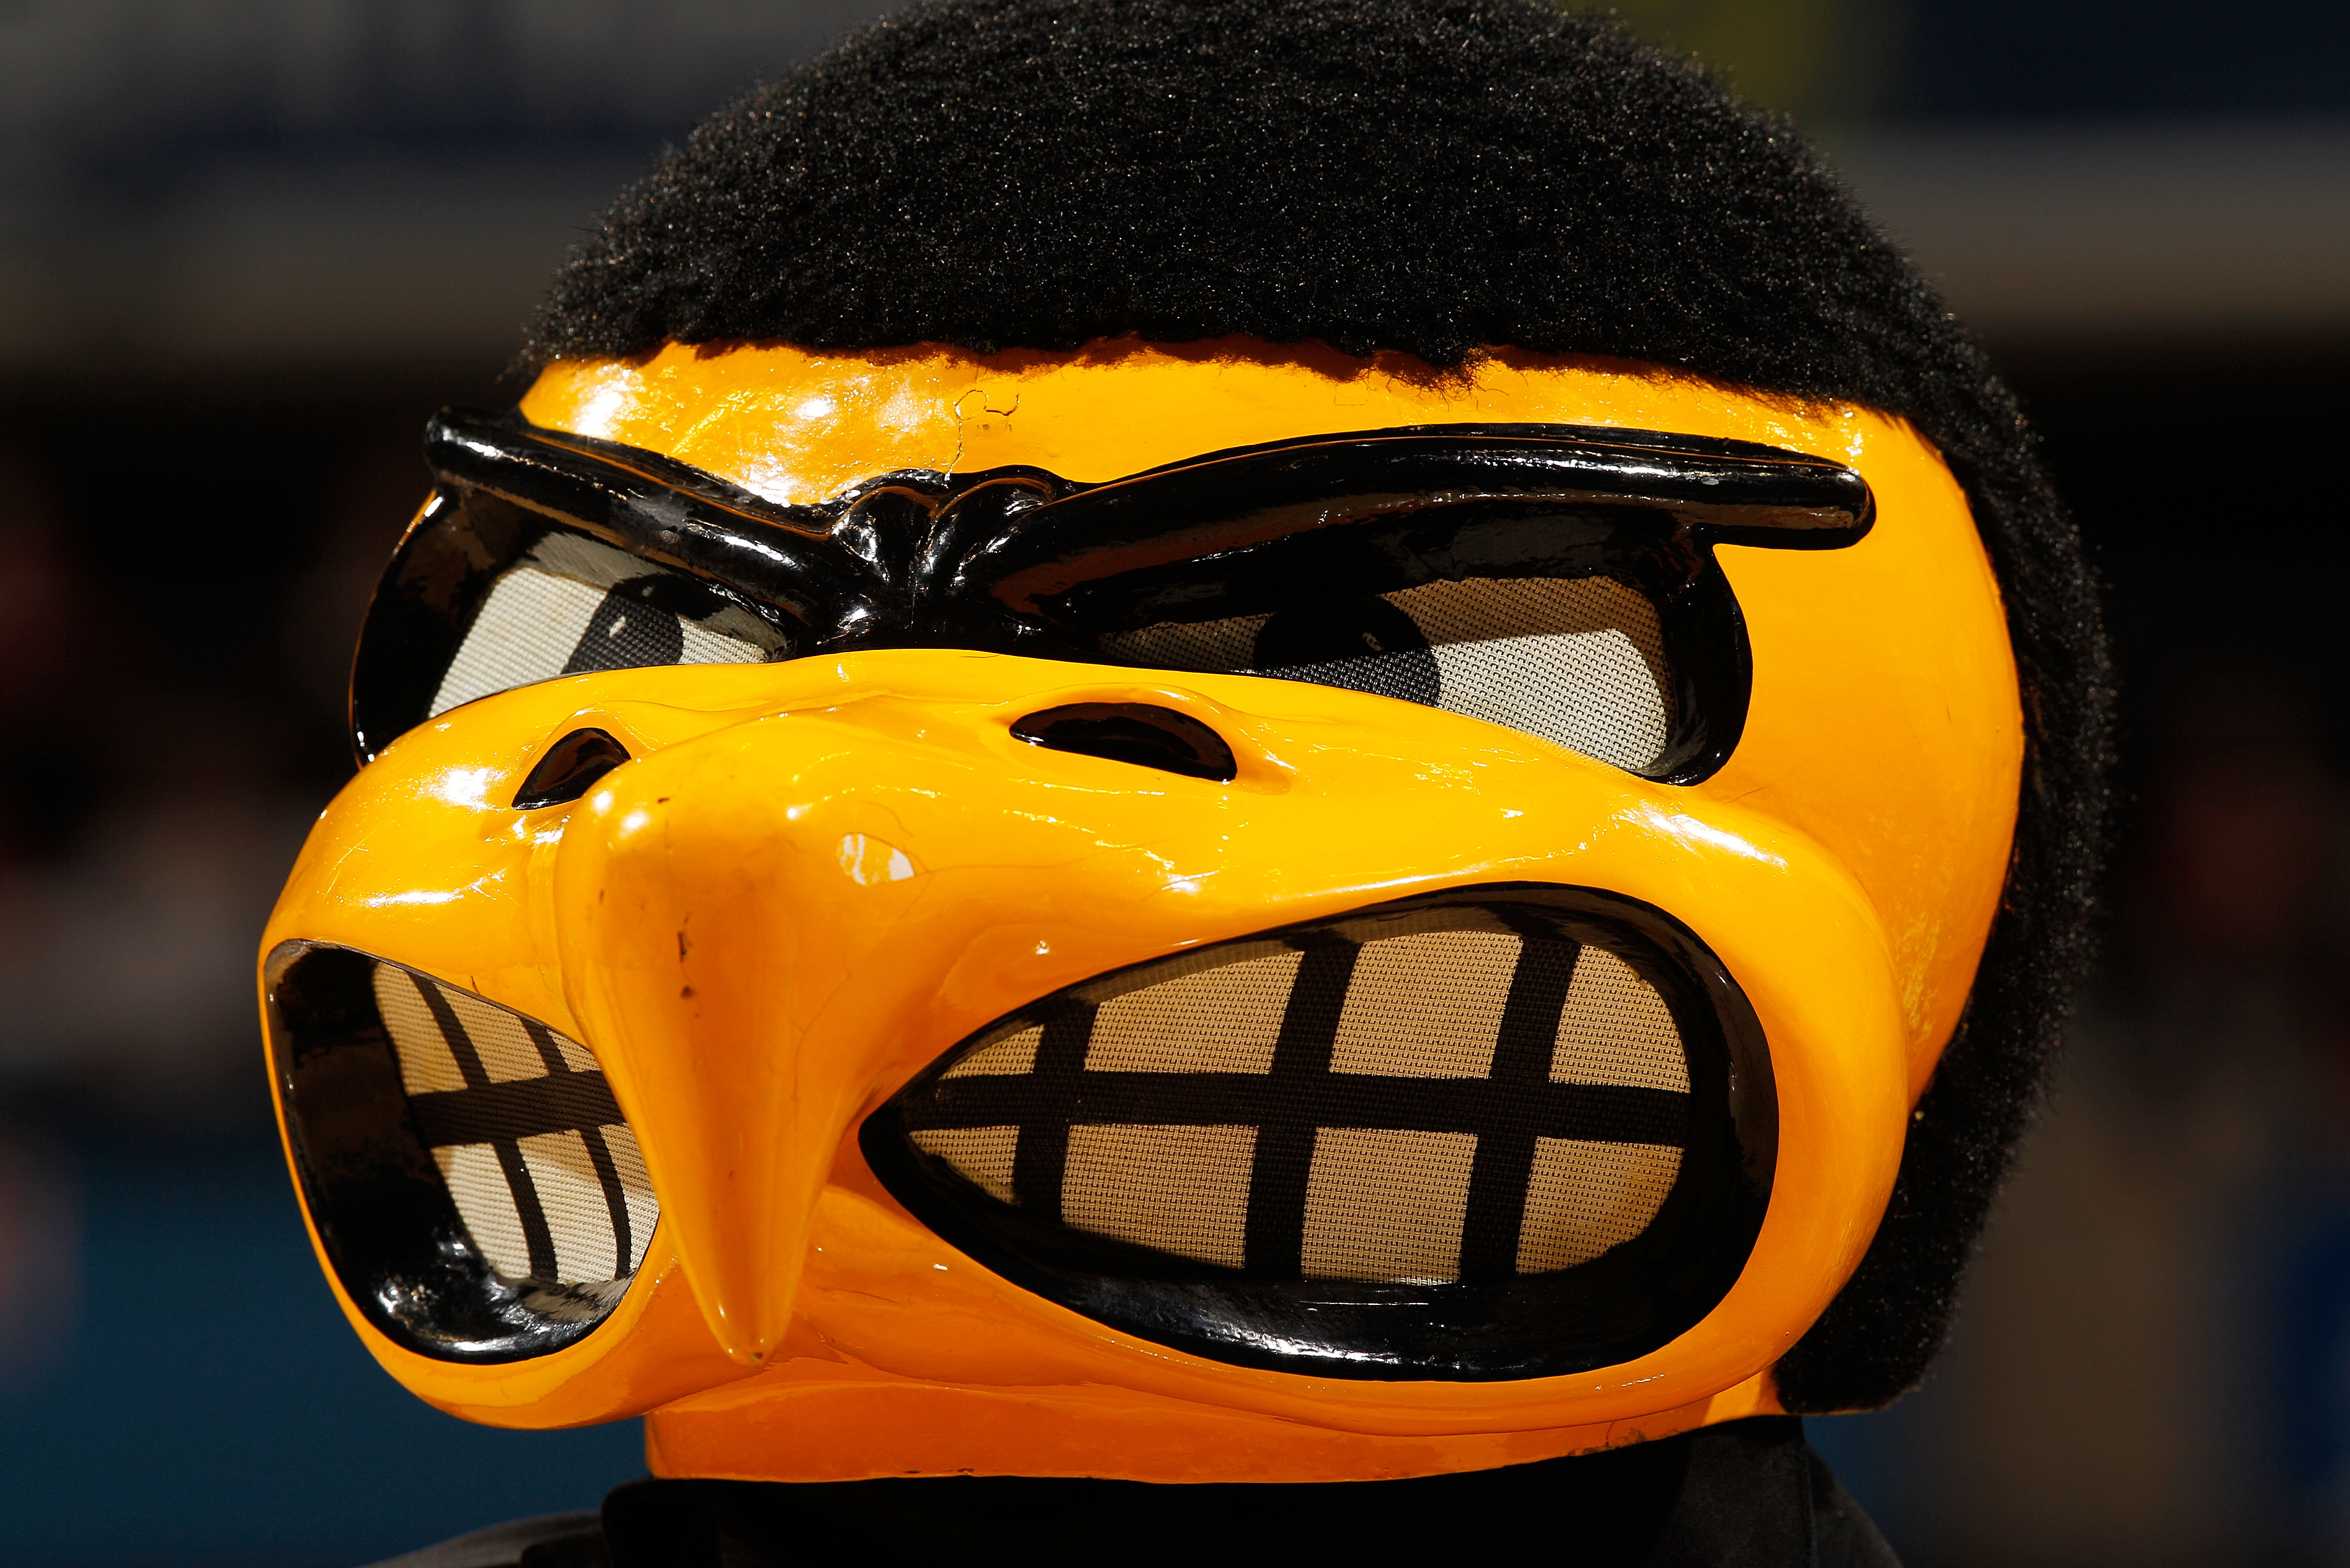 The fury of Herky